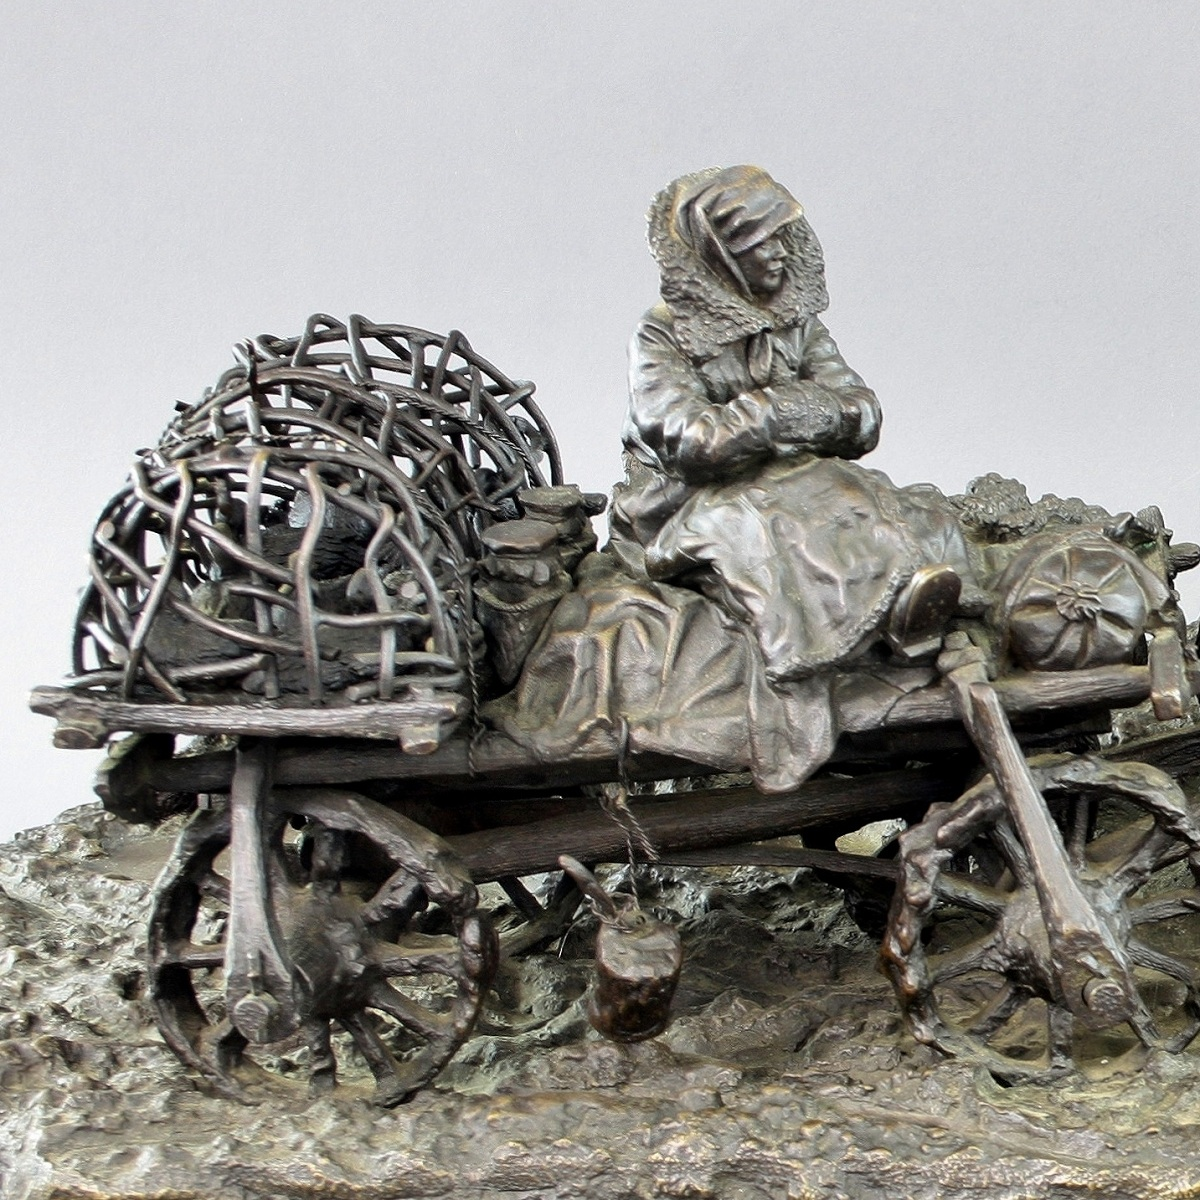 leonid-pozen-posen-posene - Leonid-Posen-Posene-Bull-cart_Russian-peasants-with-chicken-1-1200